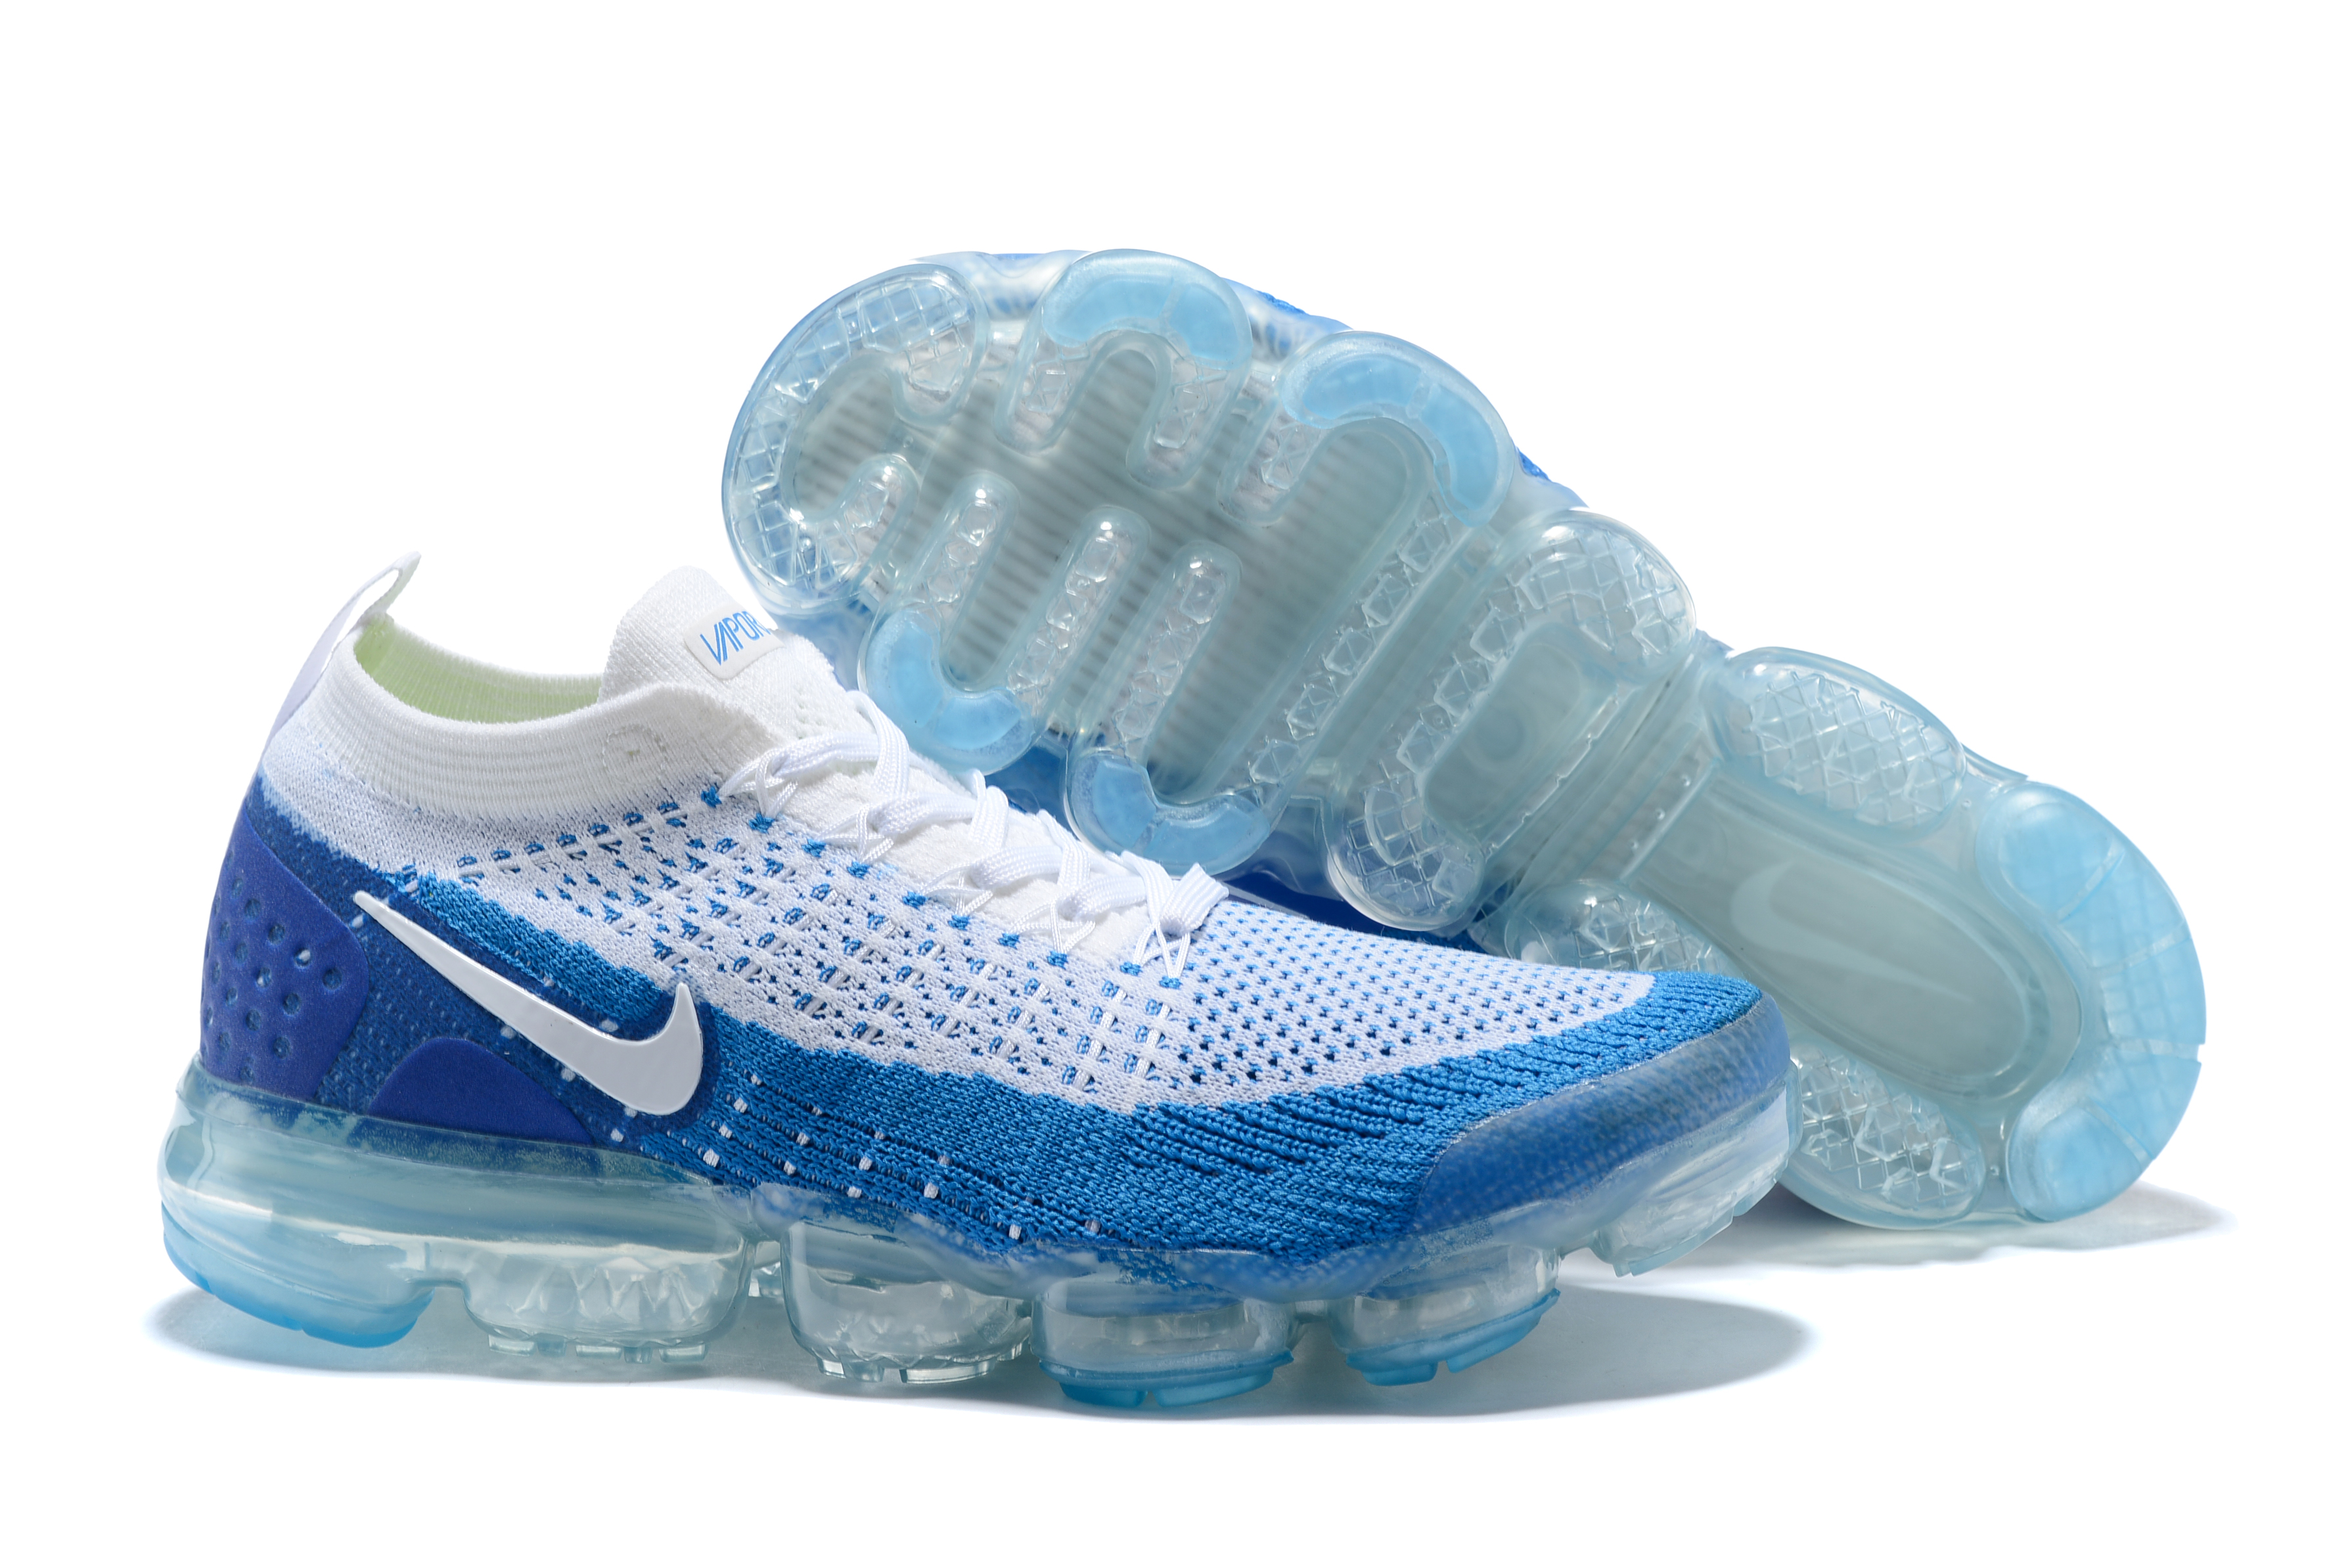 2018 Nike Air VaporMax II White Blue Shoes